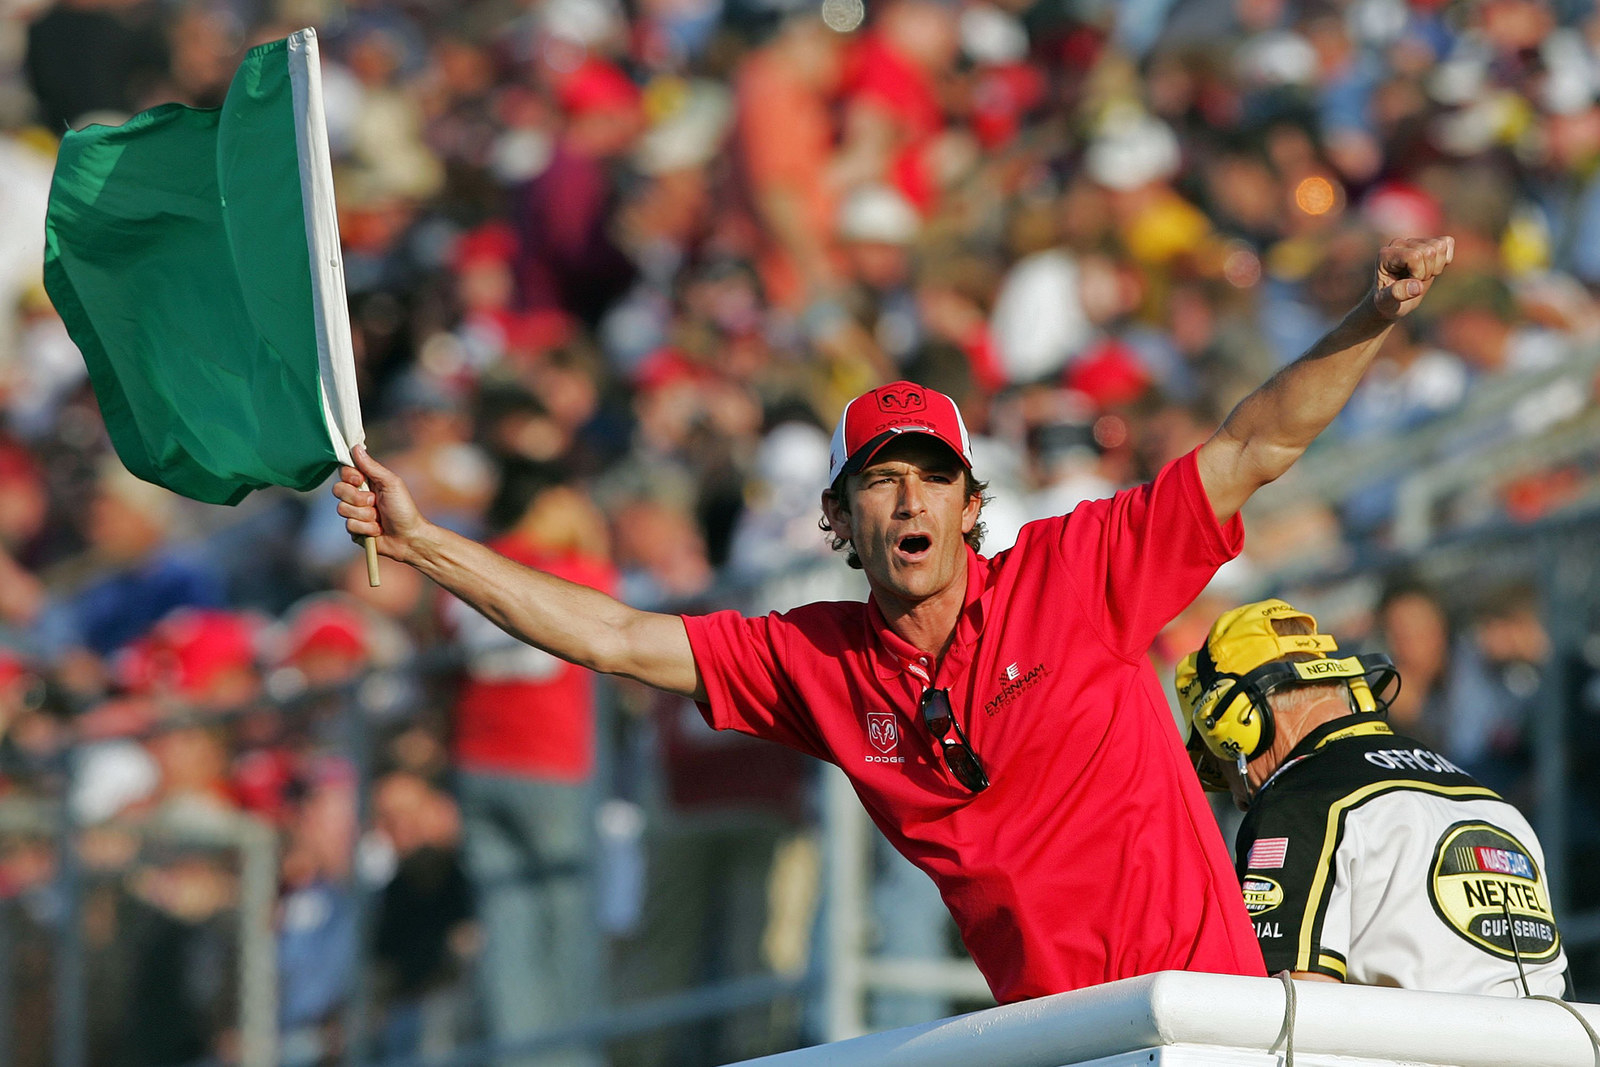 Luke Perry waves the green flag before the start of the NASCAR Nextel Cup Series Dodge Charger 500 on May 13, 2006, at Darlington Raceway in Darlington, South Carolina.